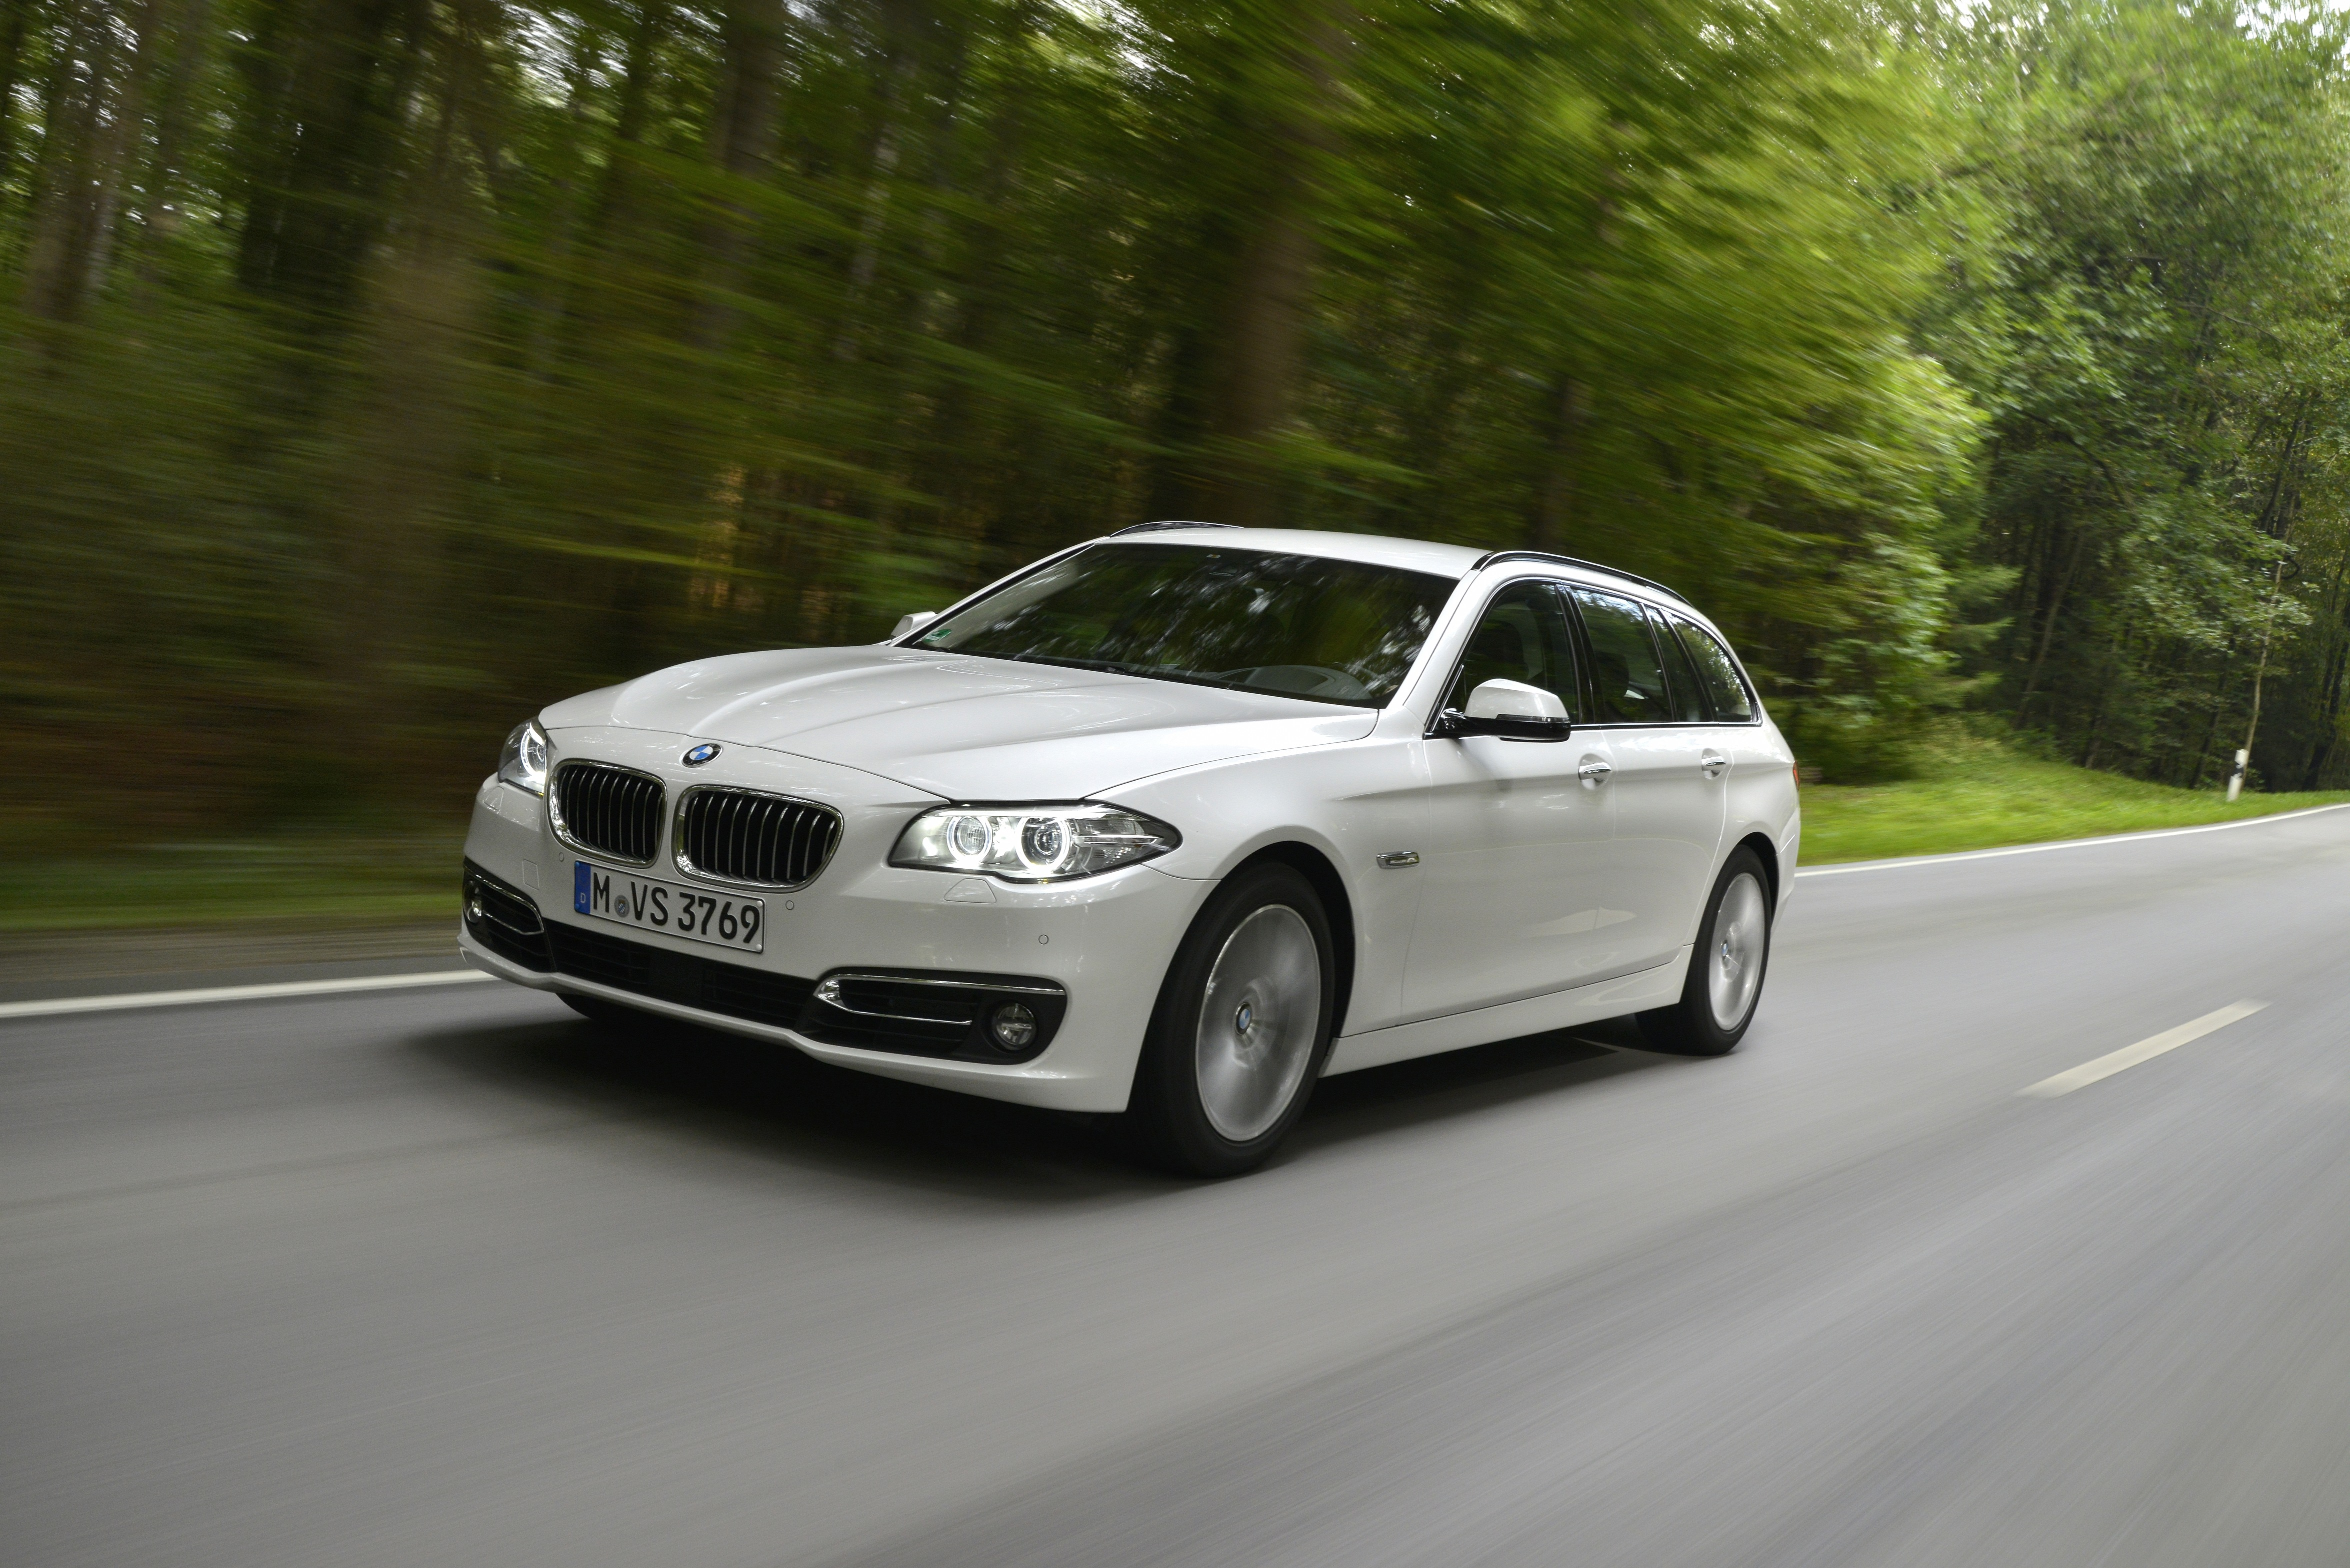 f10 bmw 520d updated with new 190 hp b47 engine image 272654. Black Bedroom Furniture Sets. Home Design Ideas